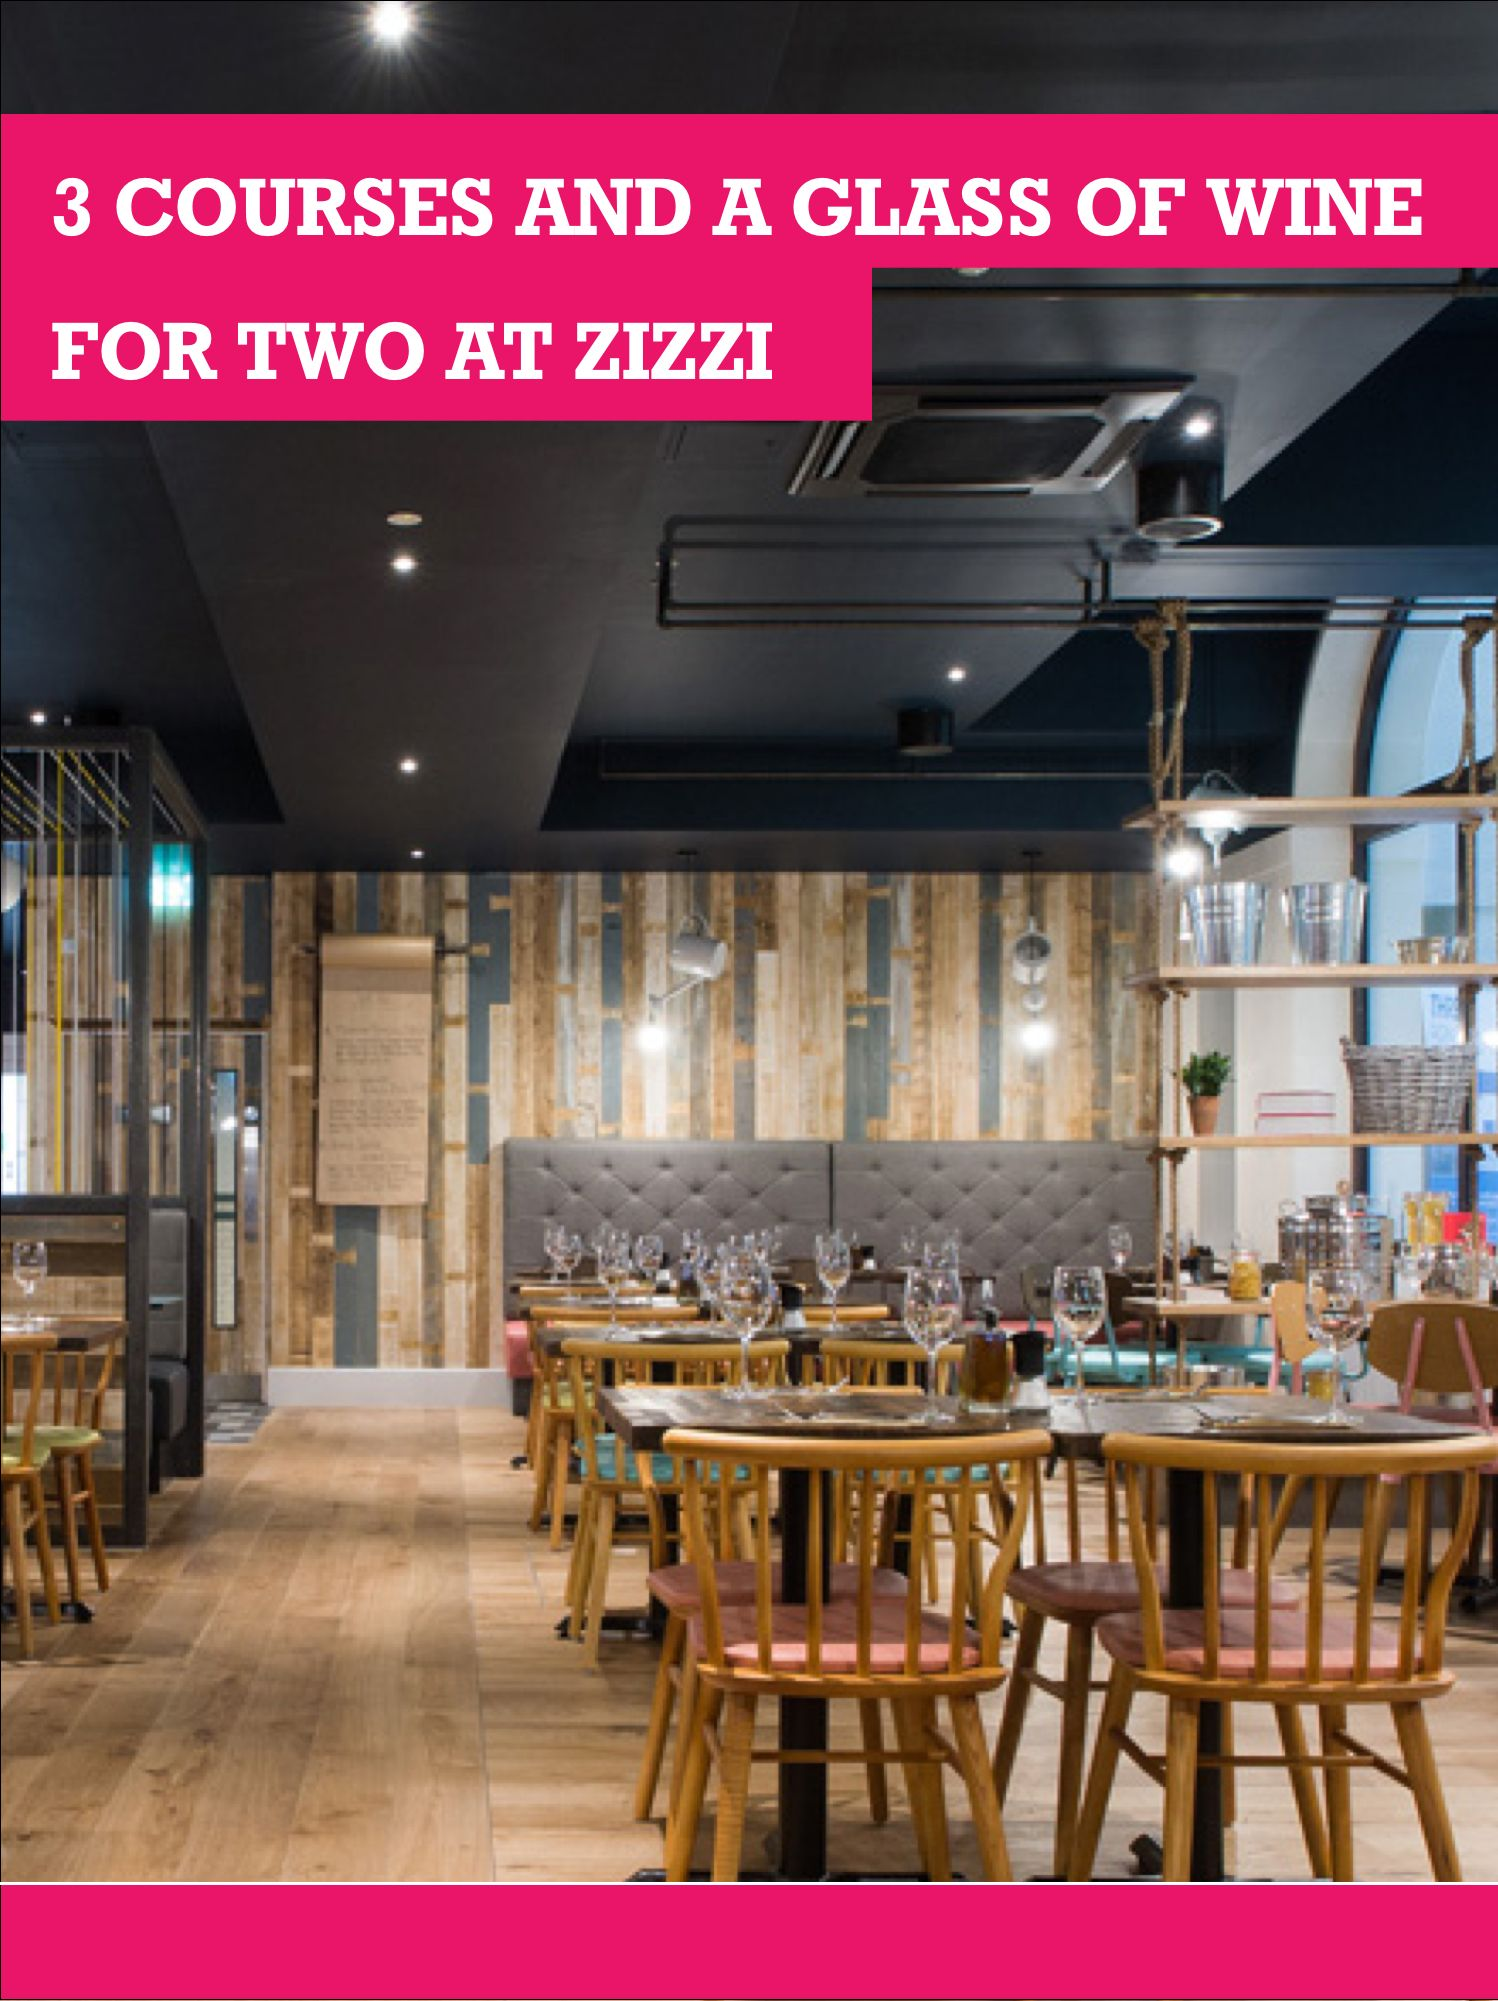 Buyagift Buyagift 3 course meal at zizzi for 2